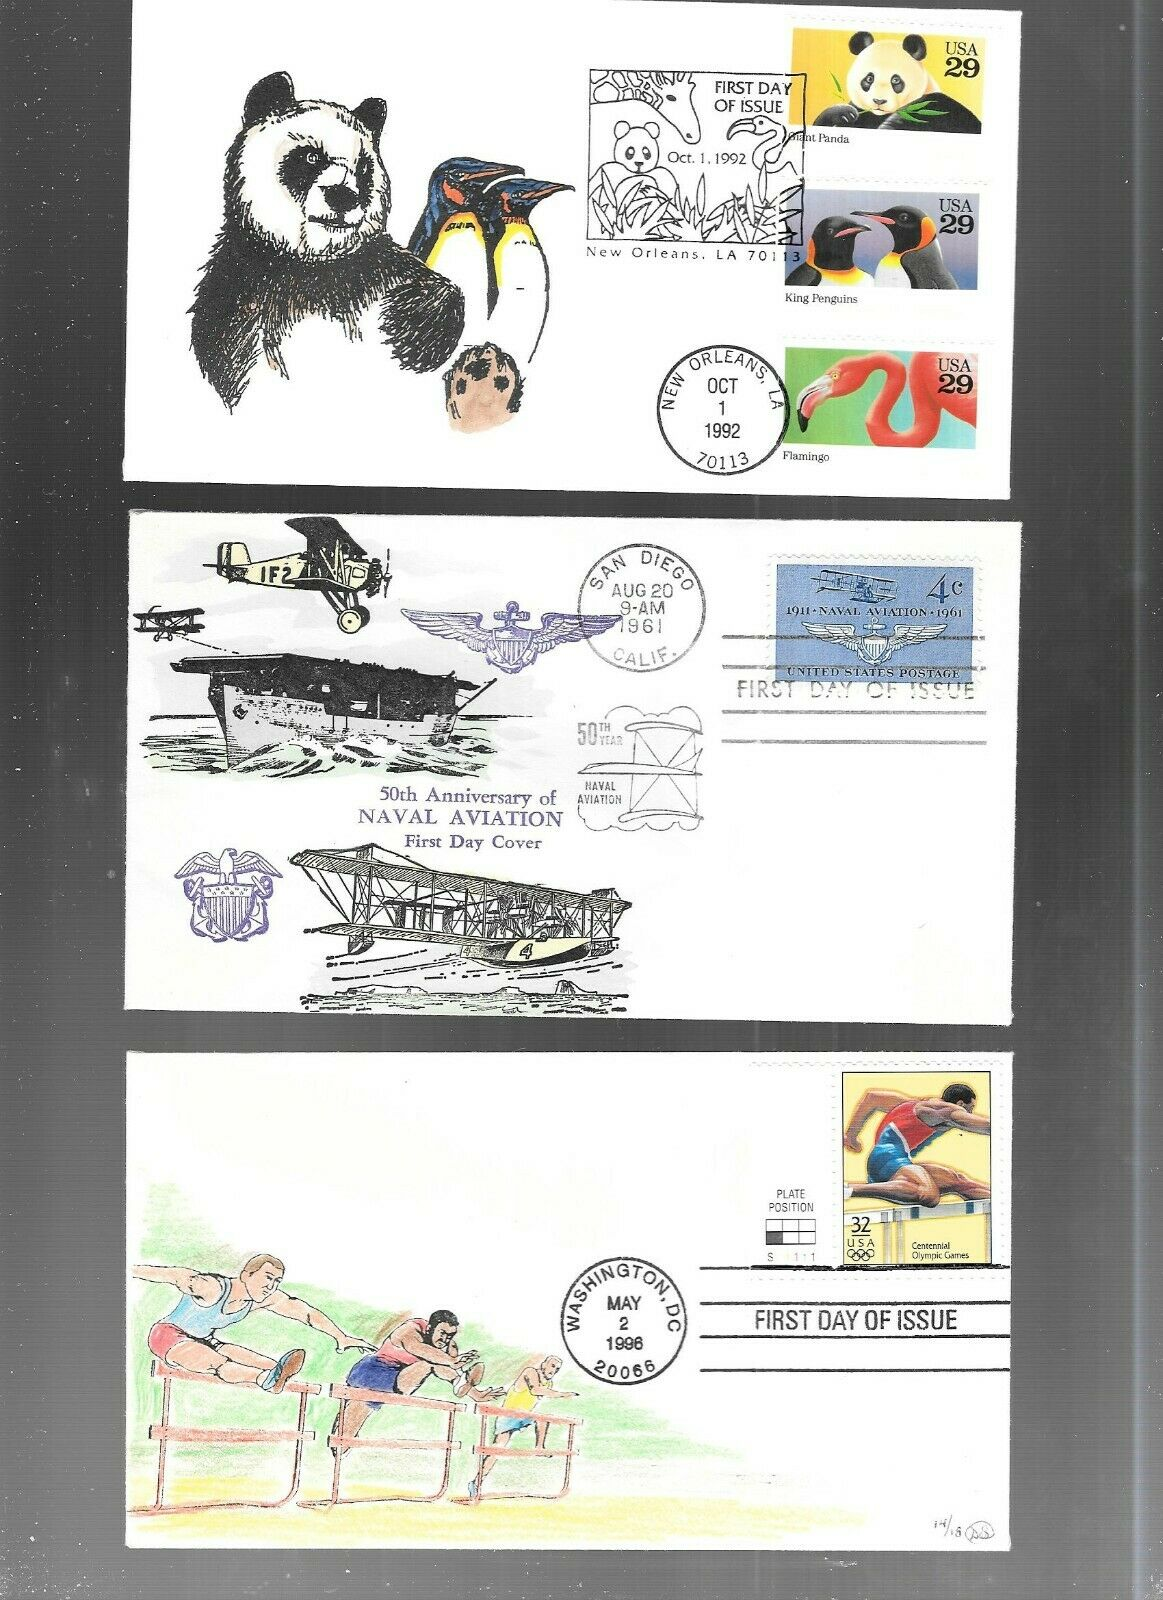 US FDC FIRST DAY COVERS COLLECTION HAND PAINTED OR COLORED LOT OF 12 - $12.50